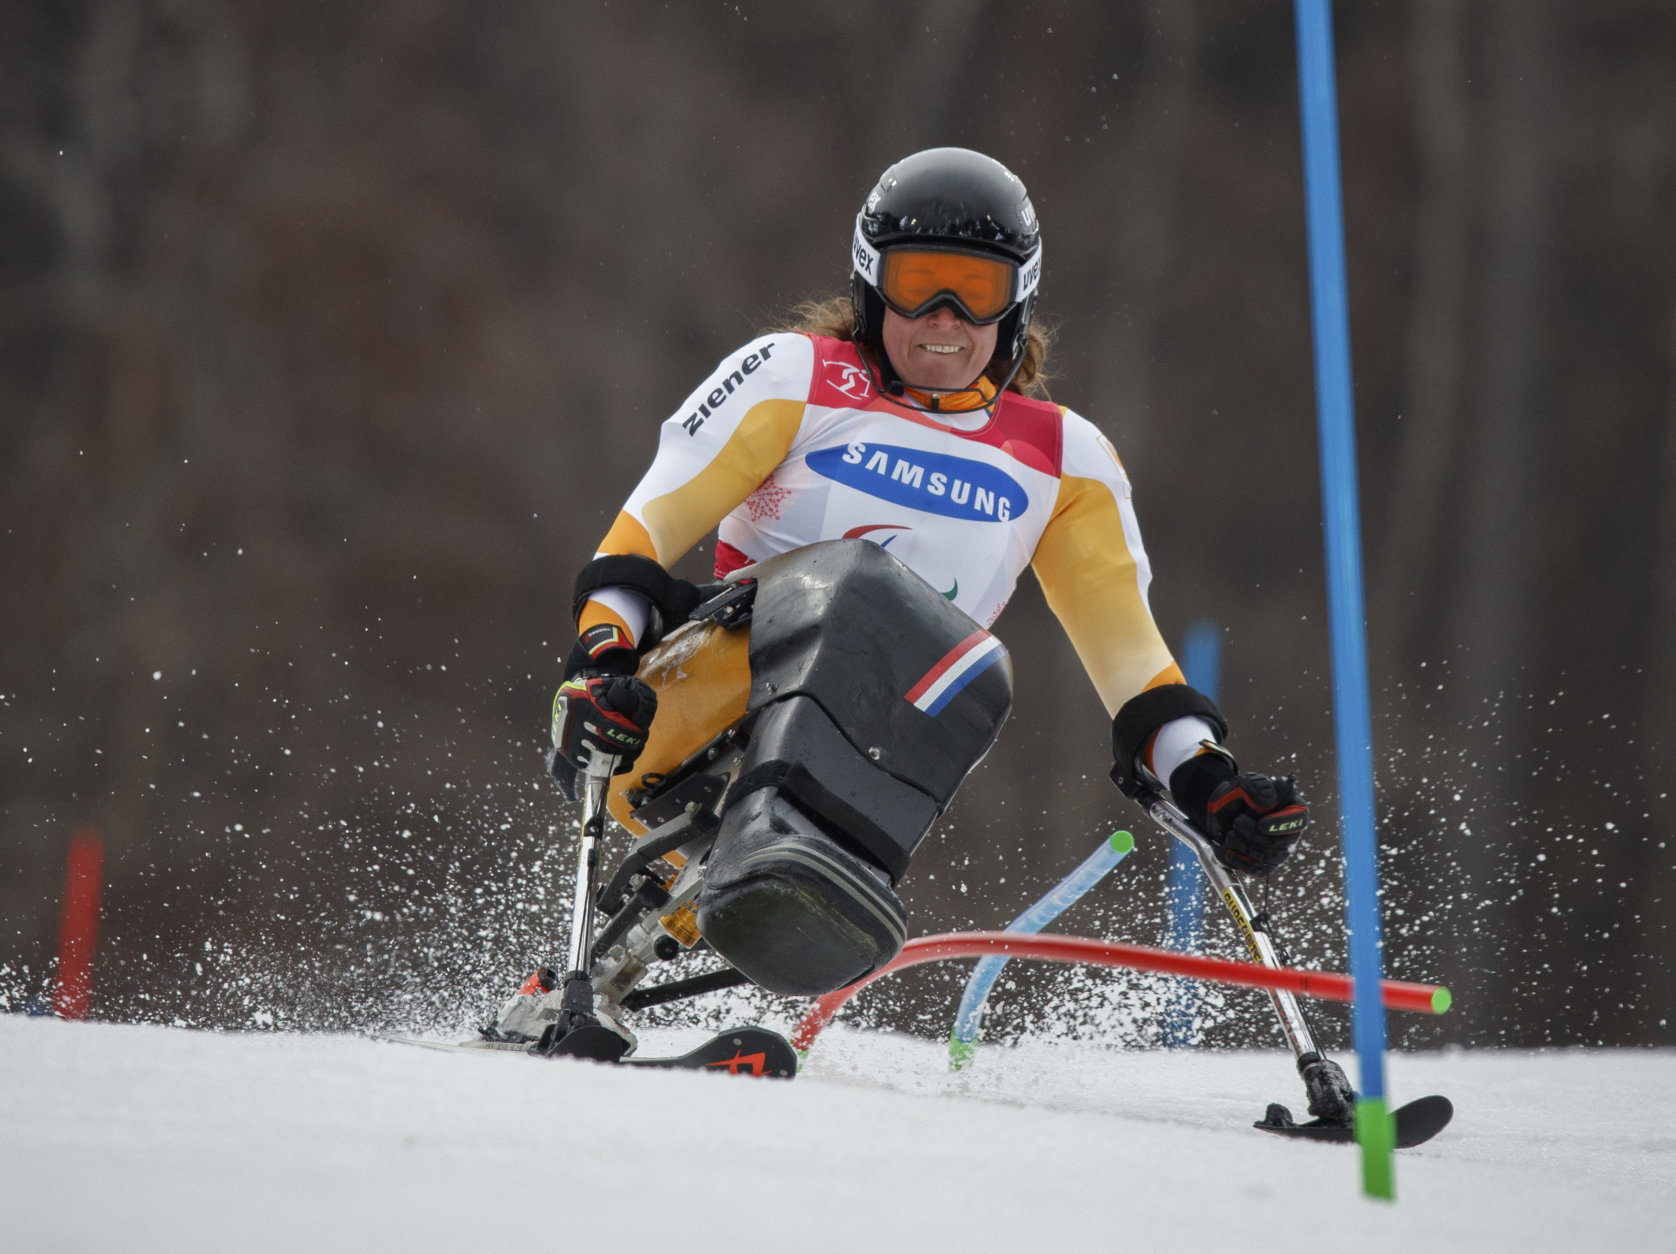 Linda Van Impelen of the Netherlands competes in the Alpine Skiing Sitting Women's Slalom at the Jeongseon Alpine Centre in Jeongseon, South Korea at the 2018 Winter Paralympics Sunday, March 18, 2018. (Simon Bruty/OIS/IOC via AP)